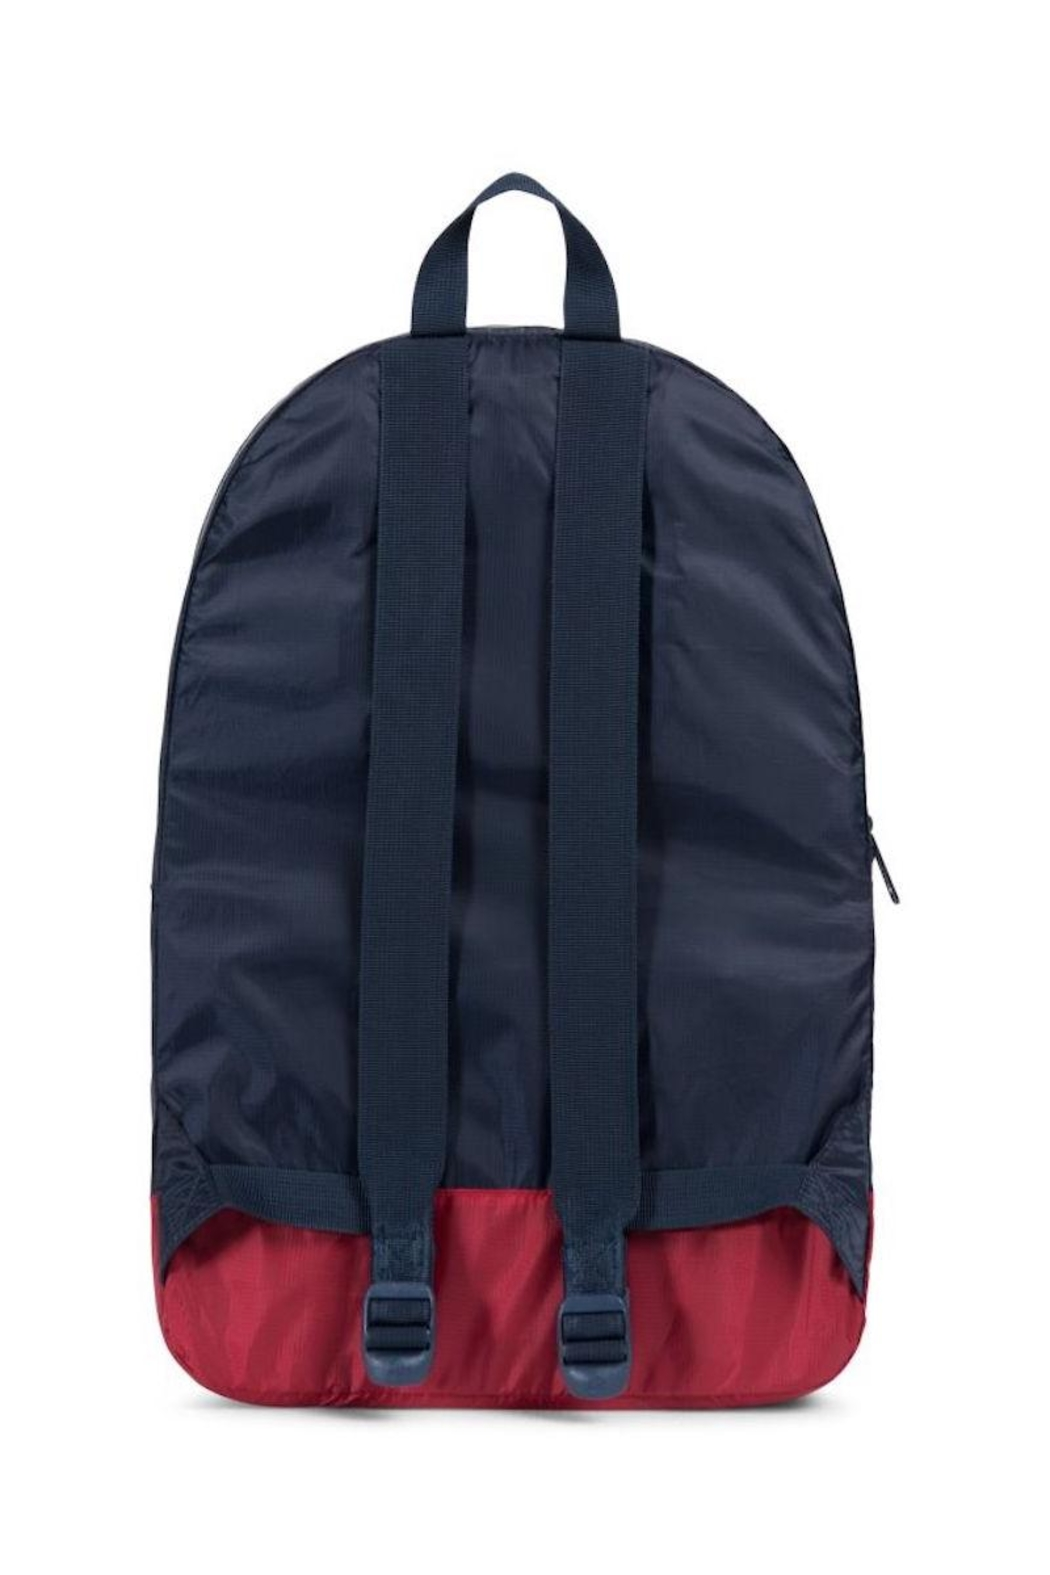 Herschel Supply Co. Navy/red Packable Daypack - Front Full Image